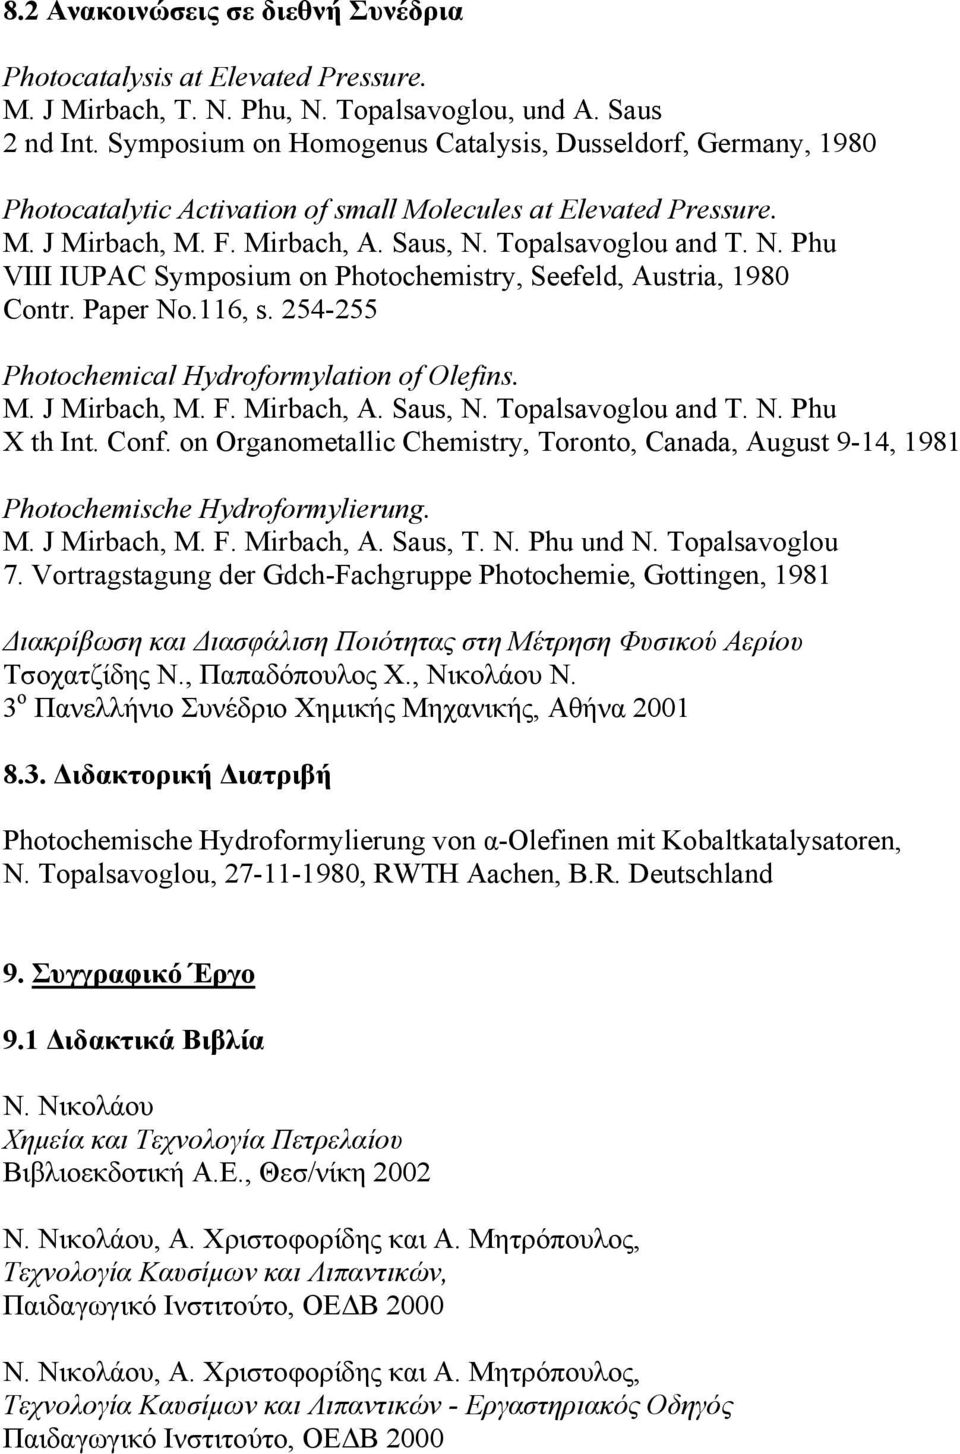 Paper No.116, s. 254-255 Photochemical Hydroformylation of Olefins. X th Int. Conf. on Organometallic Chemistry, Toronto, Canada, August 9-14, 1981 Photochemische Hydroformylierung. M. J Mirbach, M.